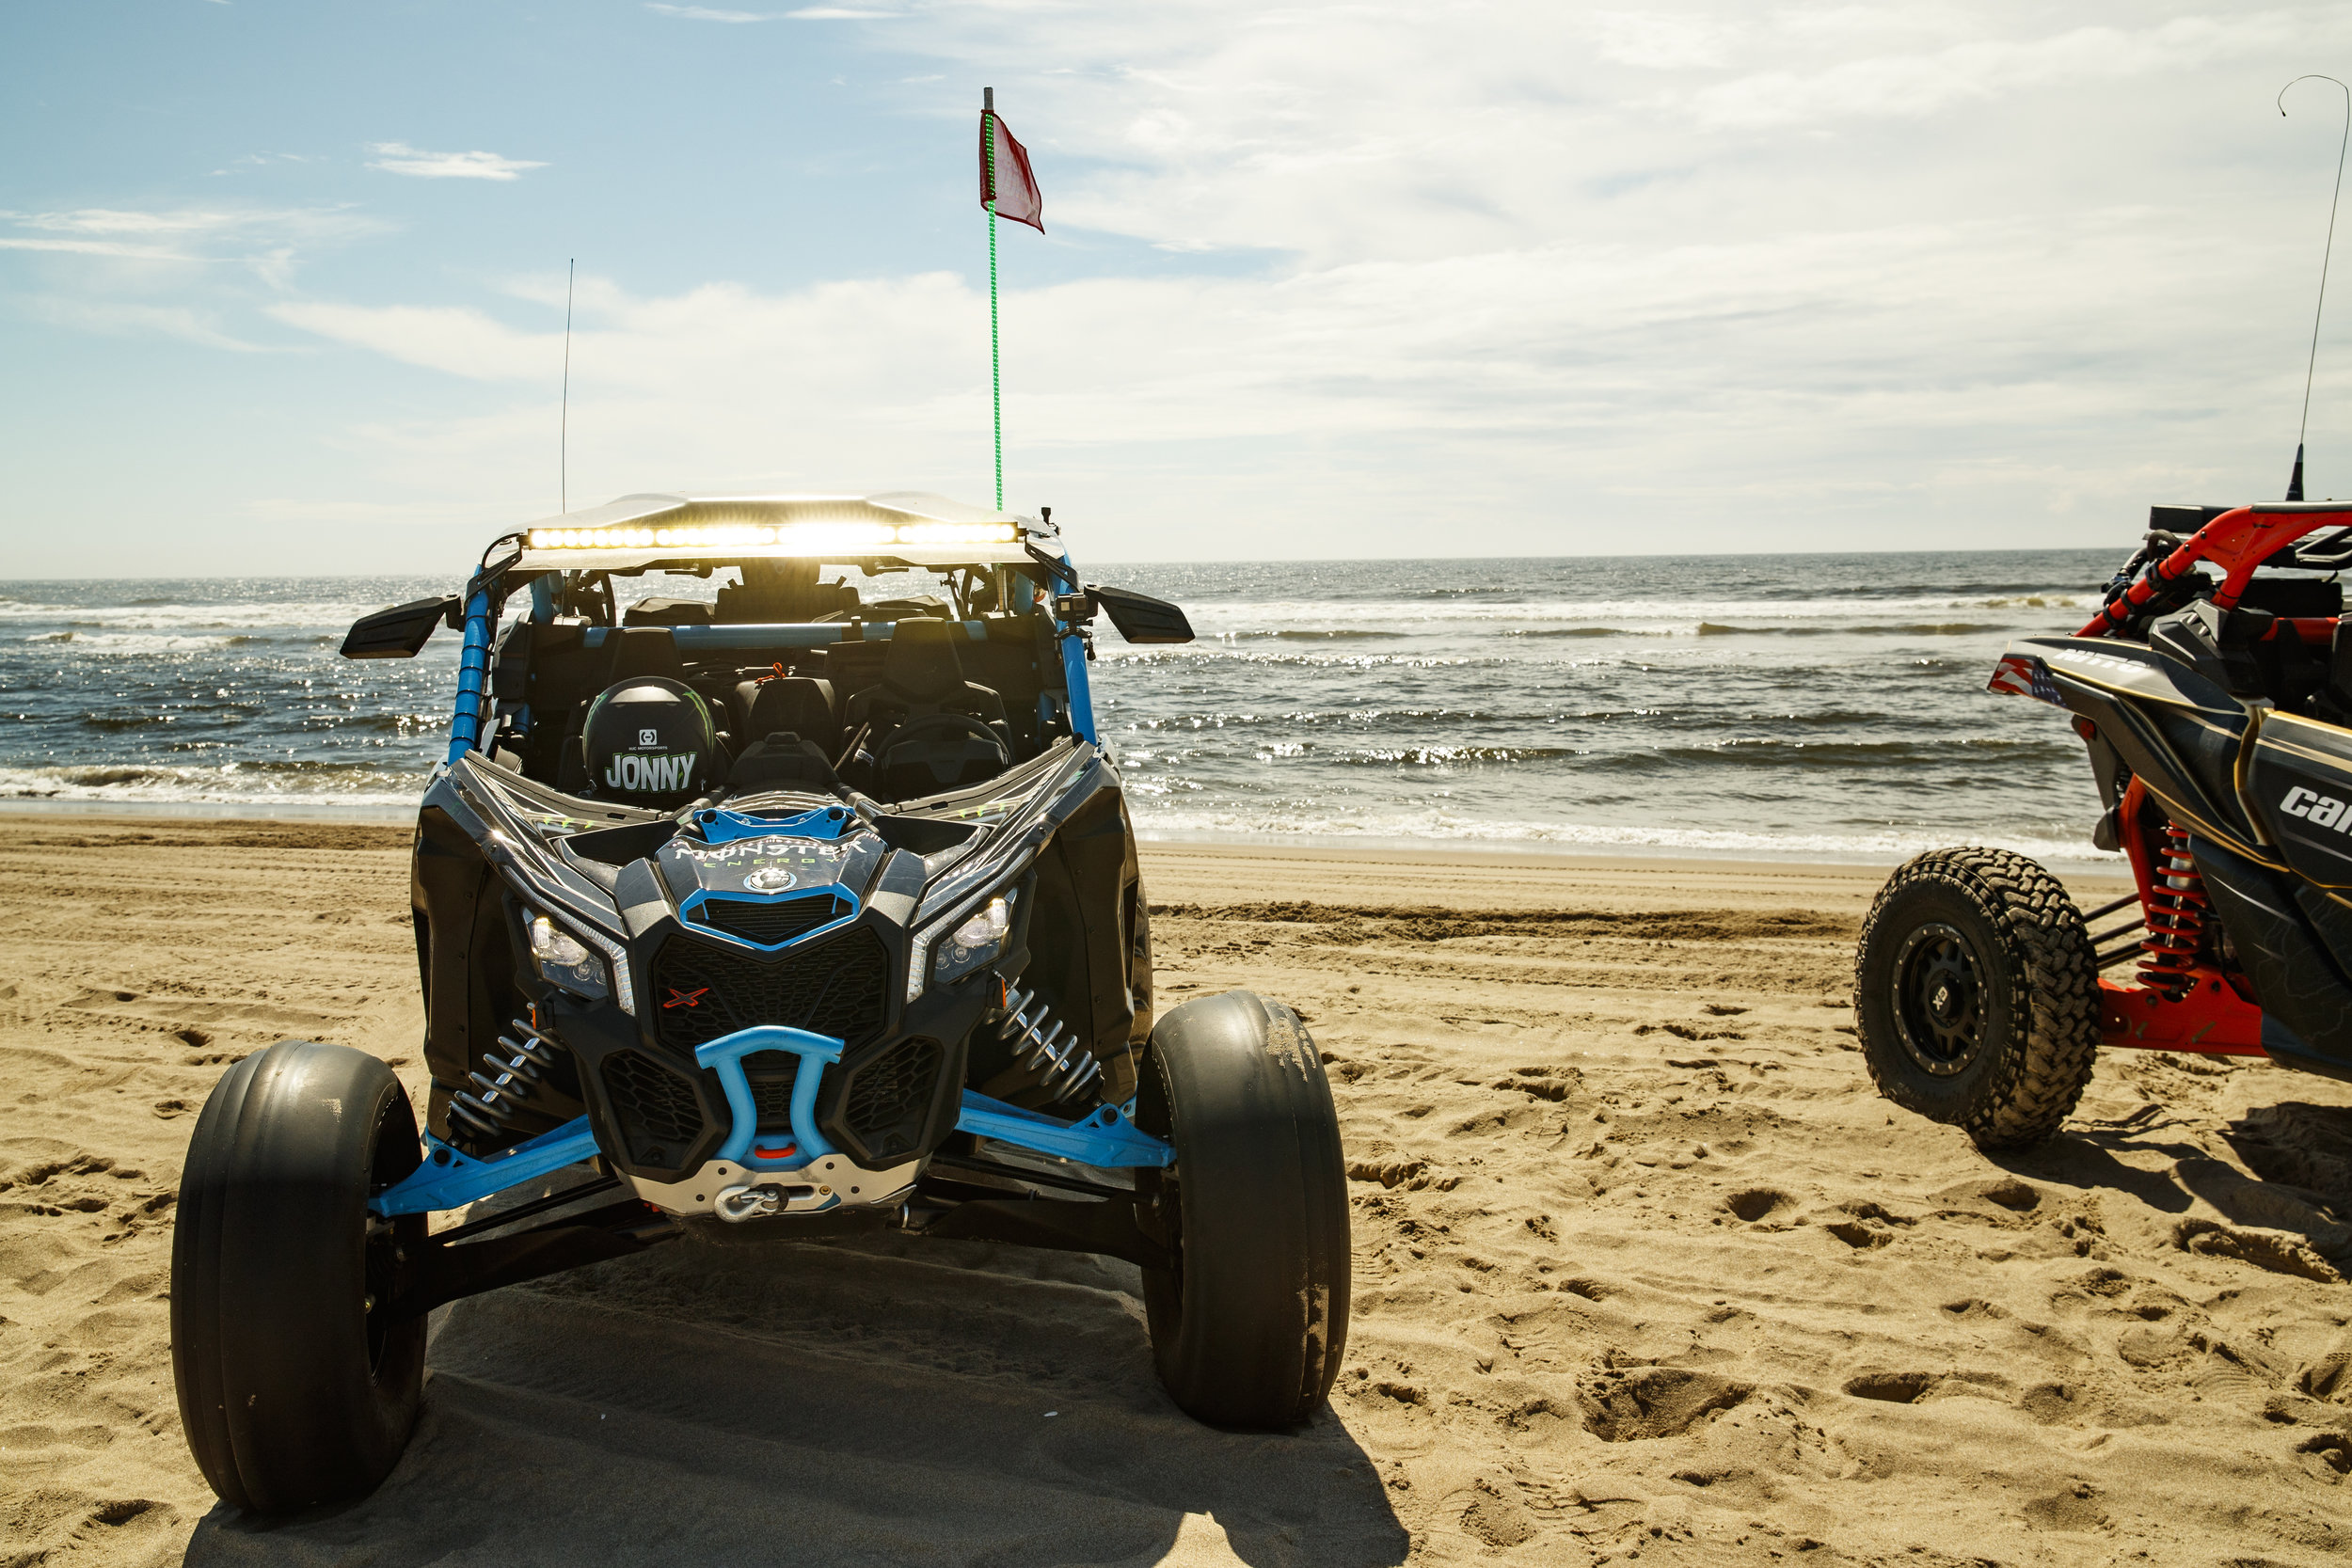 CaseyCurrie_UTVTakeover_CoosBay_Oregon_Can-Am_013.jpg